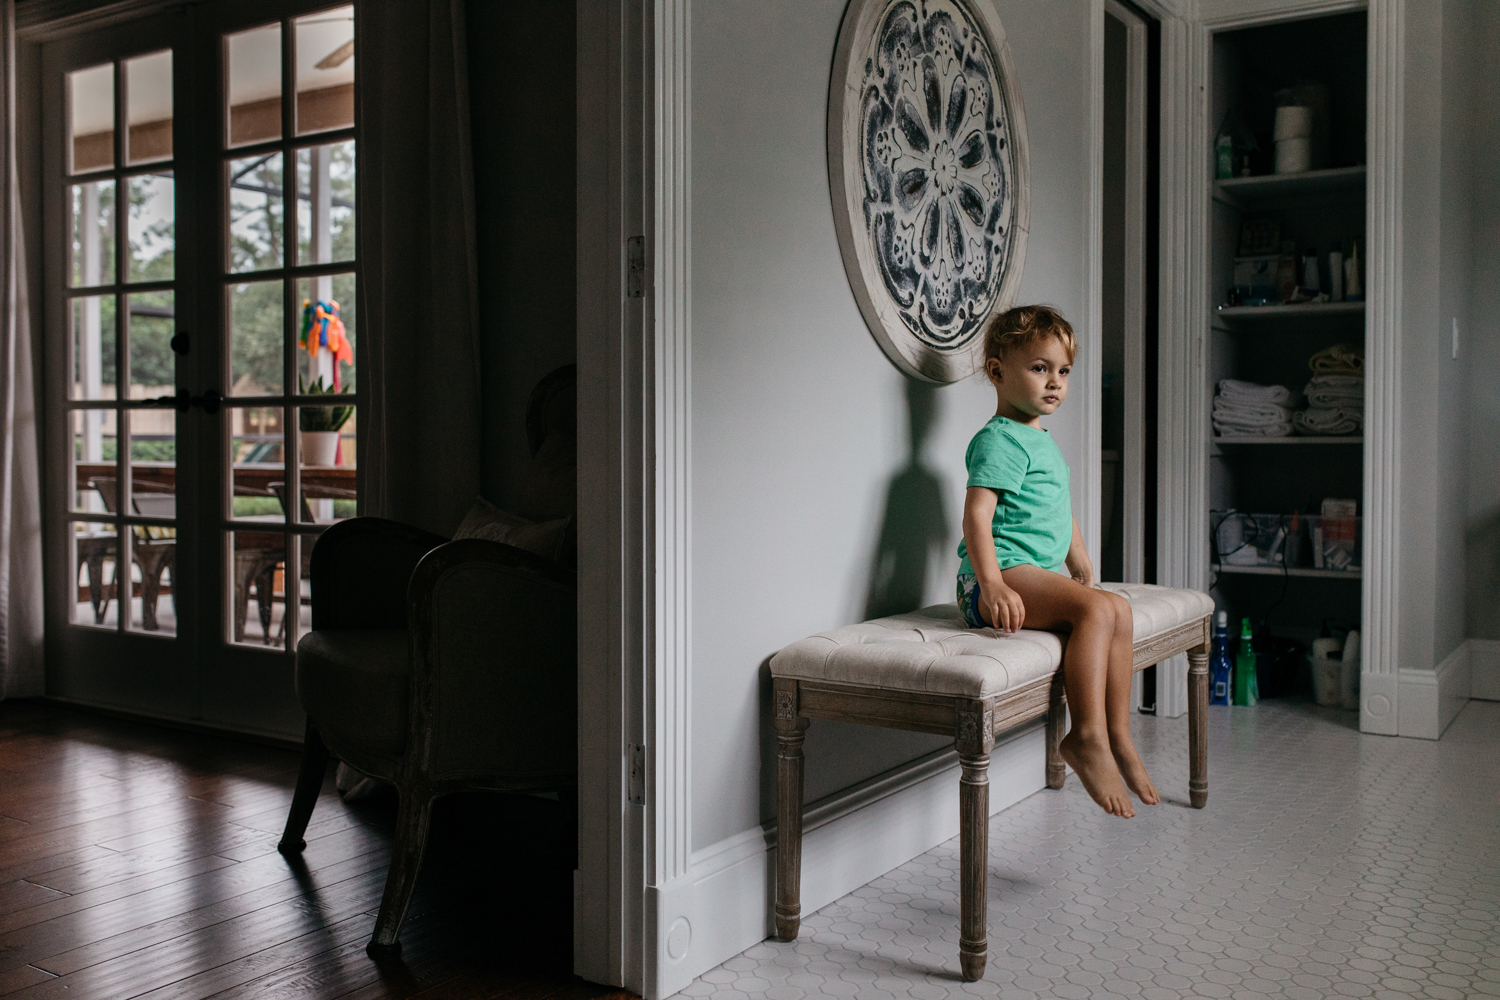 Toddler Boy Sitting on Bench in Bathroom Orlando Lifestyle Photographer